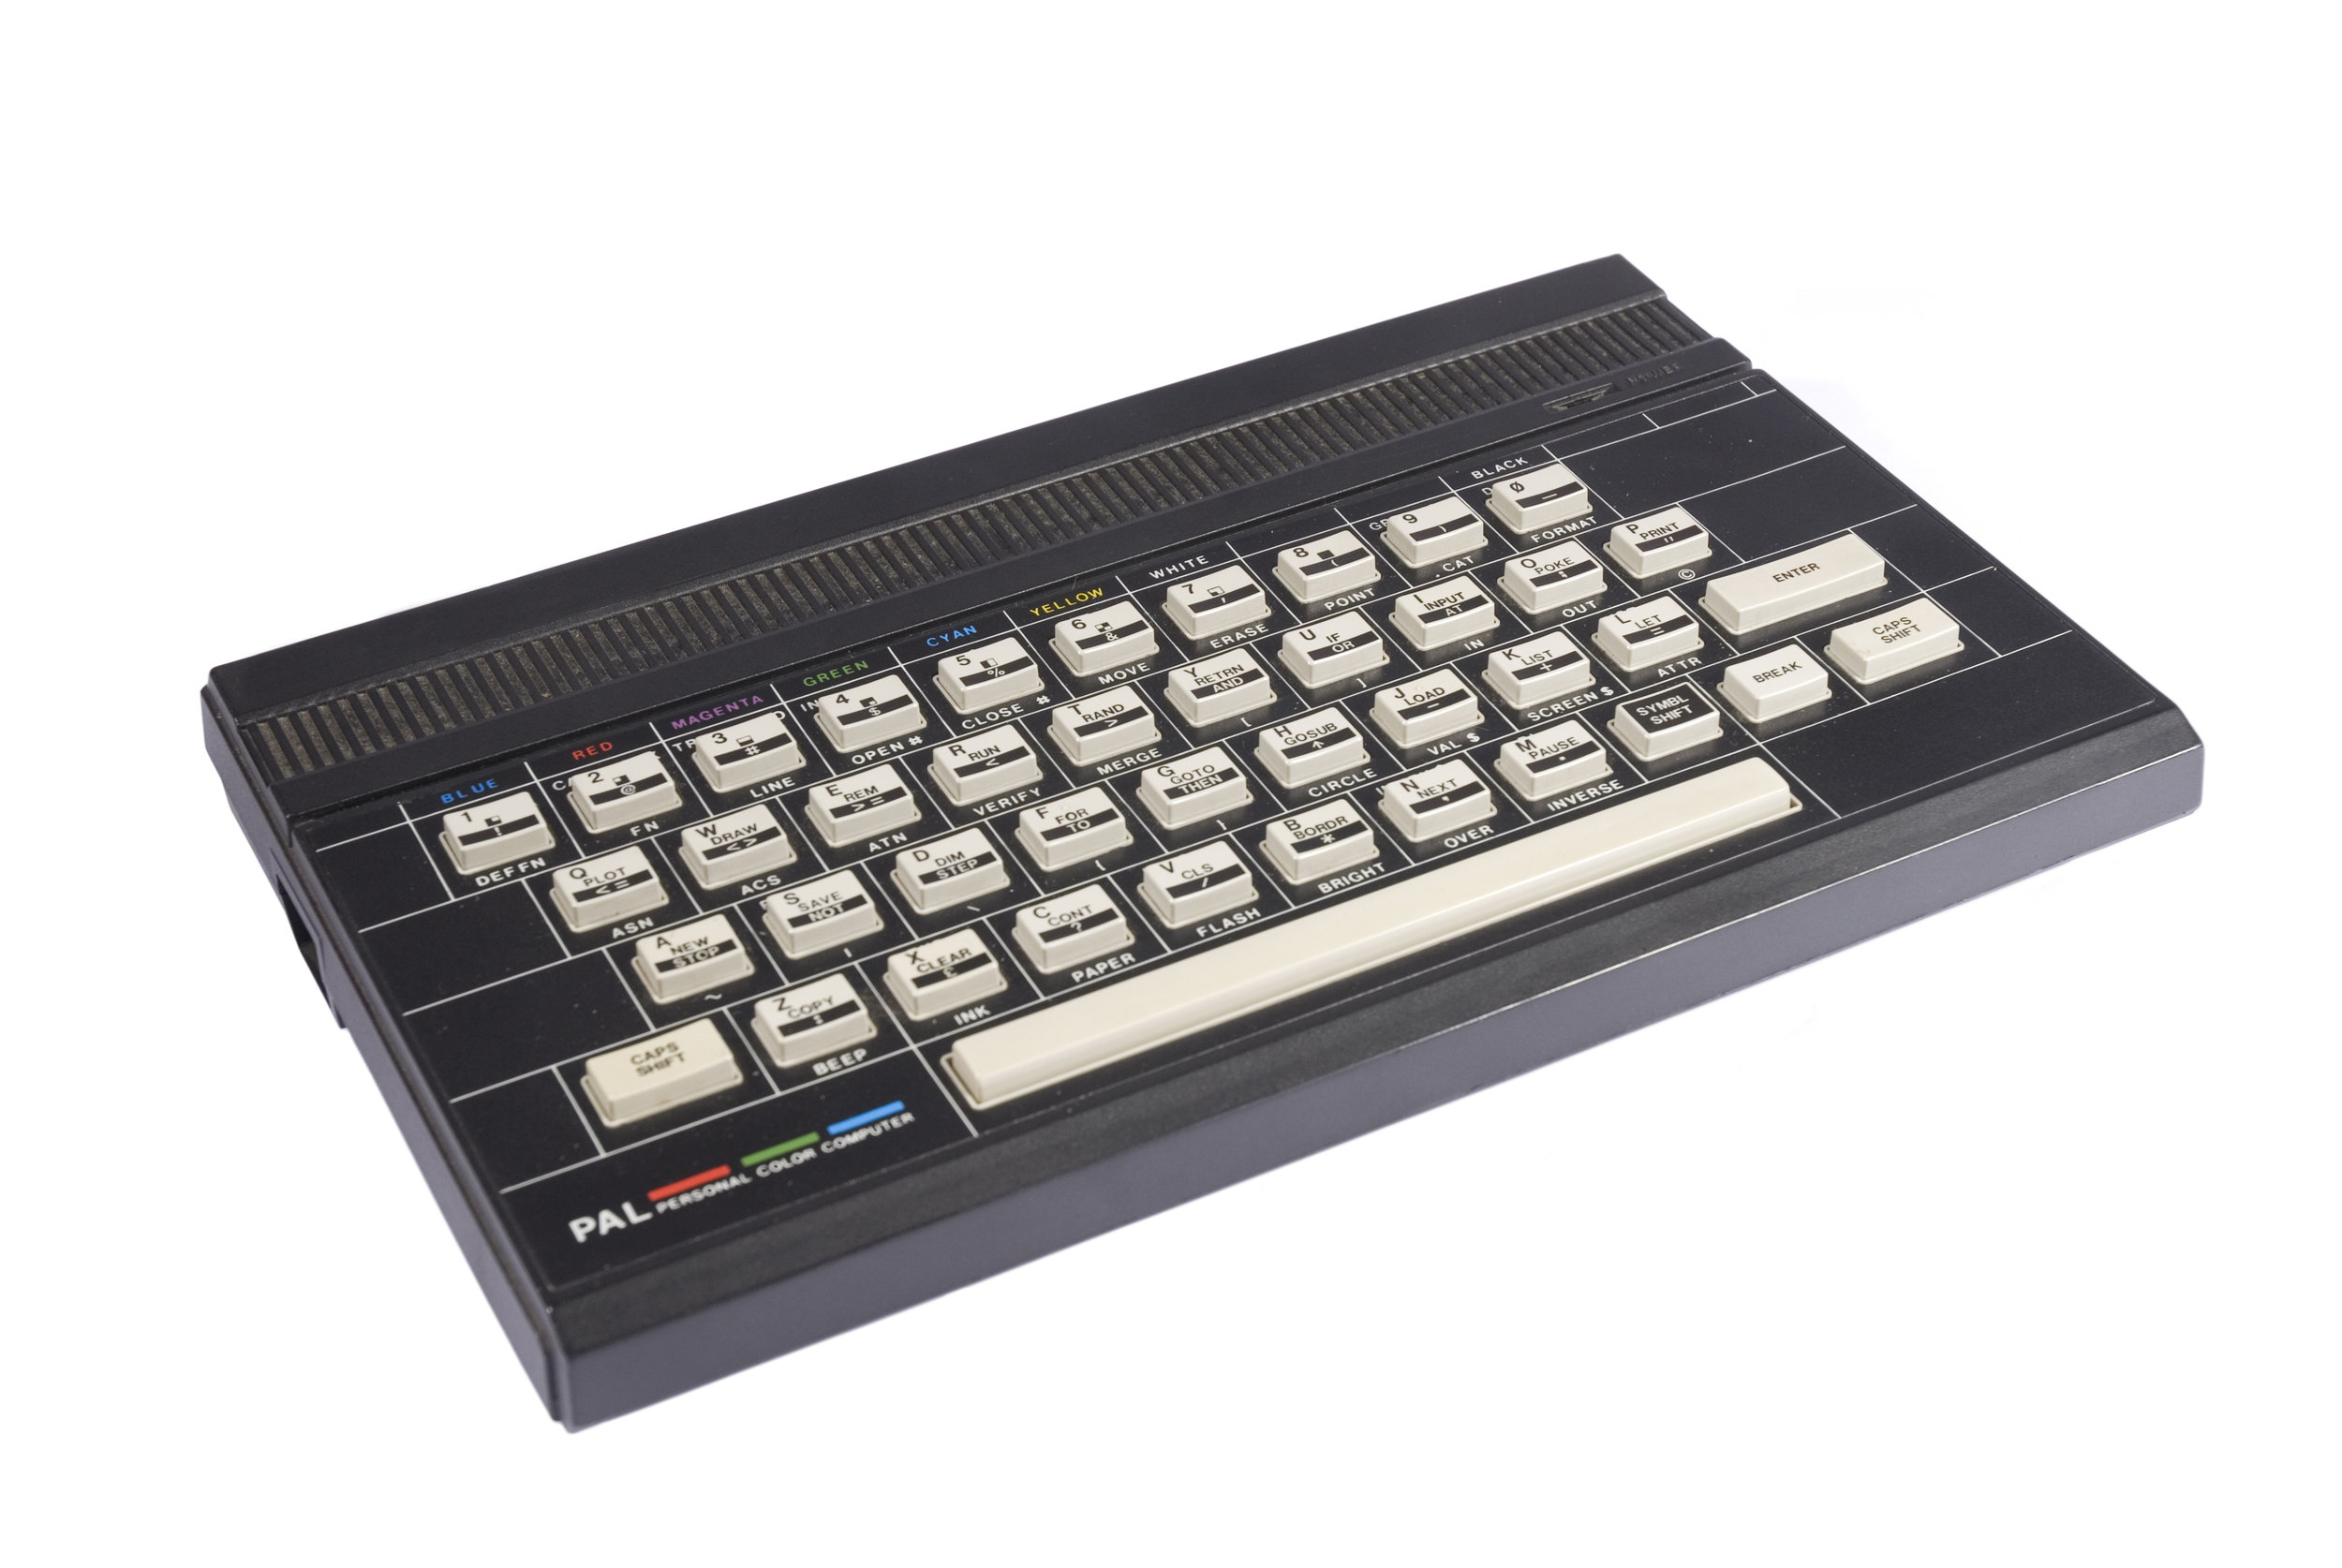 ZX Spectrum 16k (Spanish model), licensed by Adobe Stock